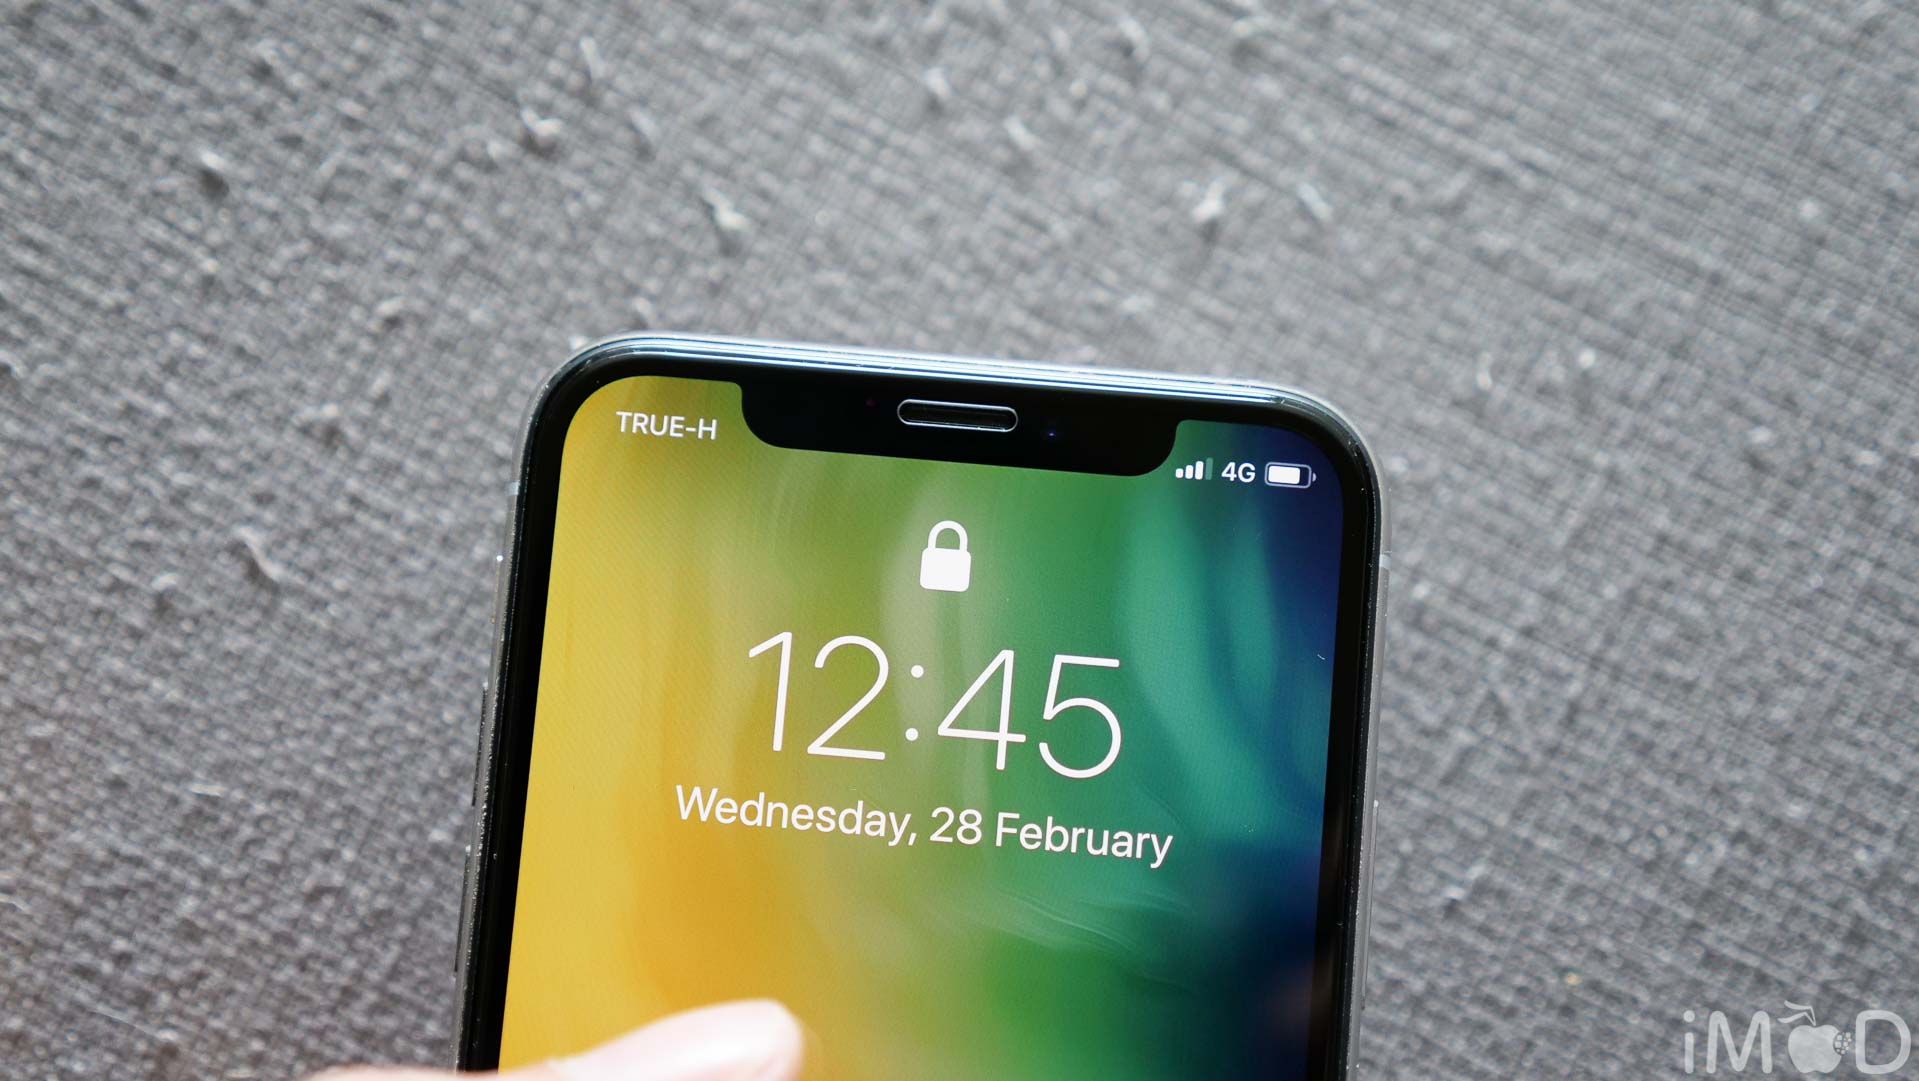 Focus Full Frame Tempered Glass Iphone X 0688 2